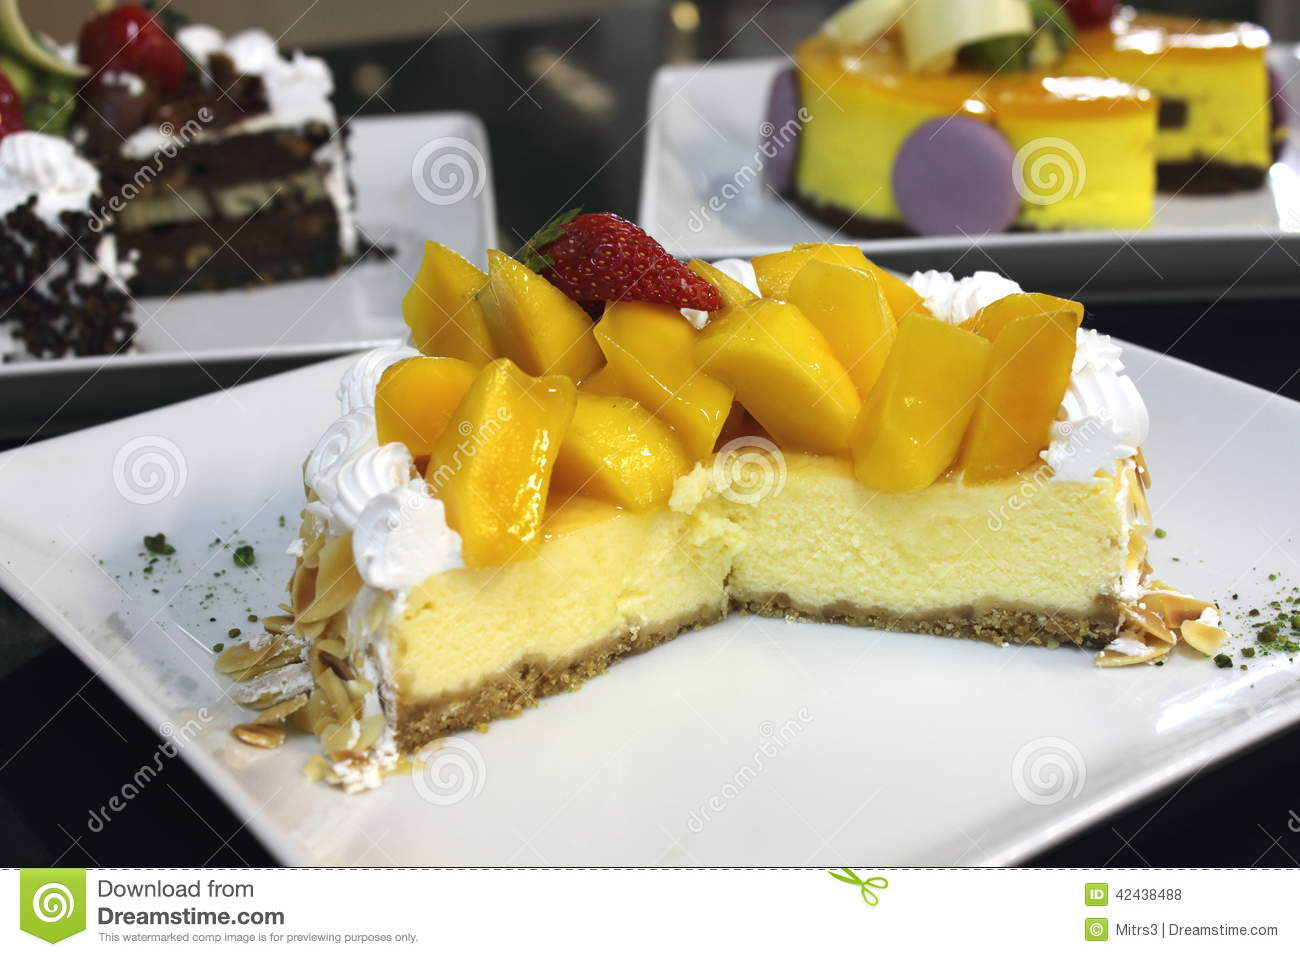 Calories In A Slice Of Gourmet Cheese Cake